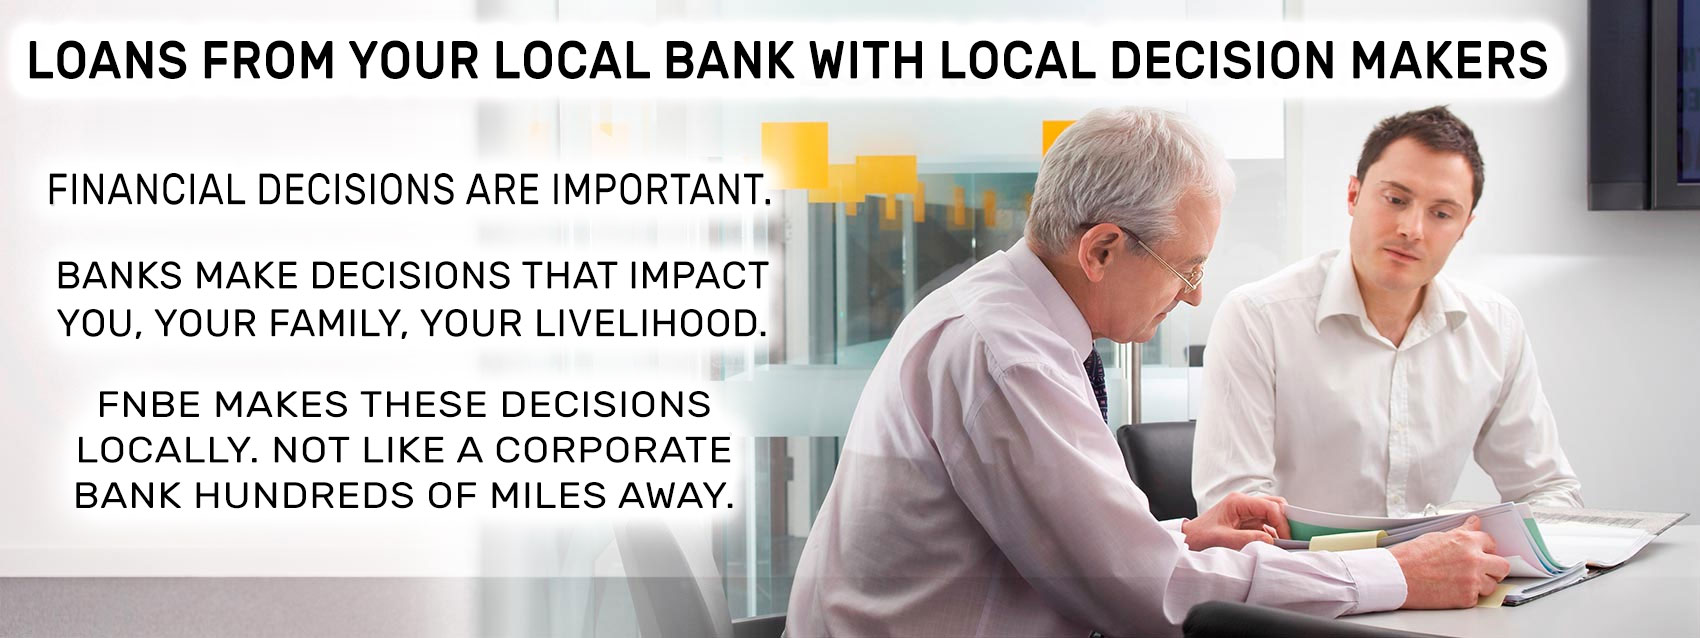 As a local bank, all loan decisions are made by local people